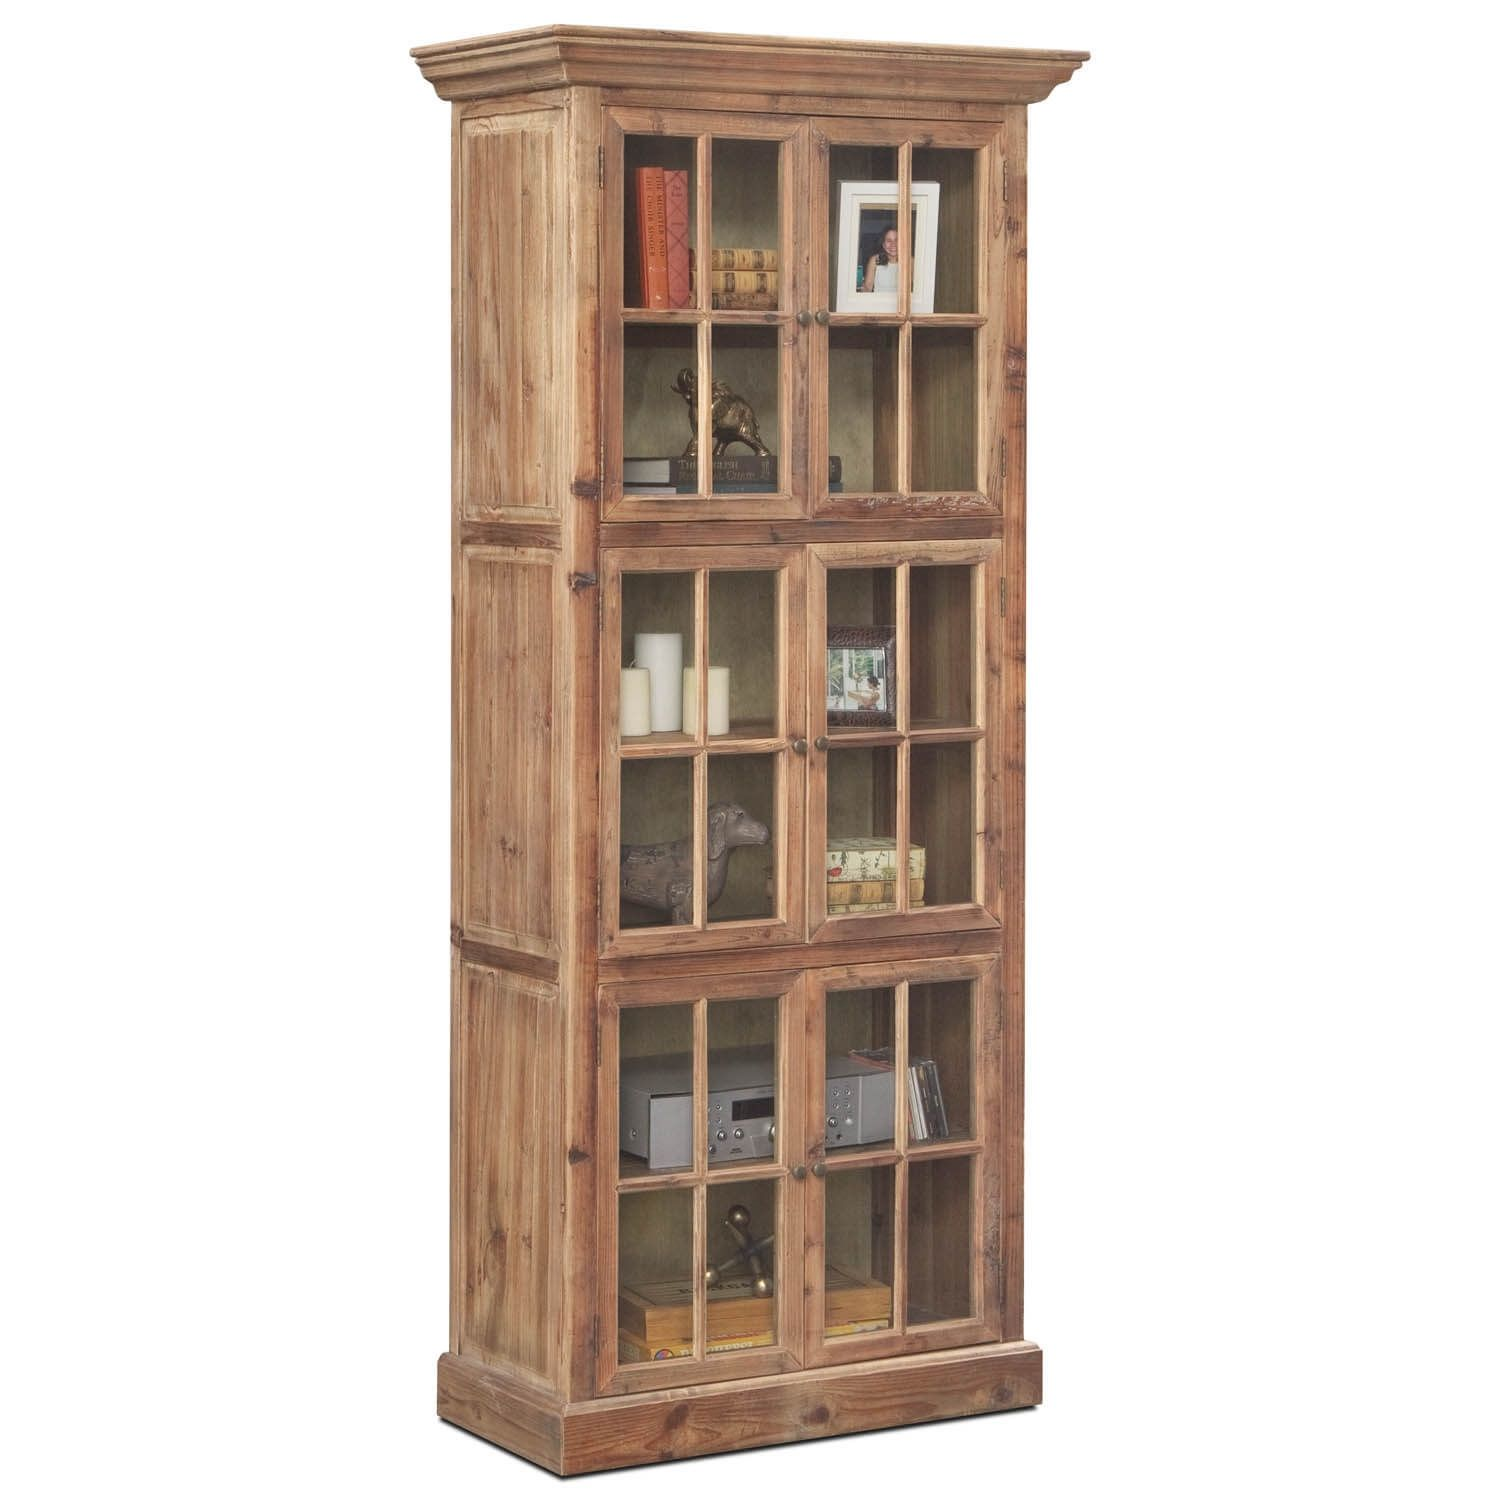 two bookcases the available david styles bookcase in base from pin a stuart is simple closed style